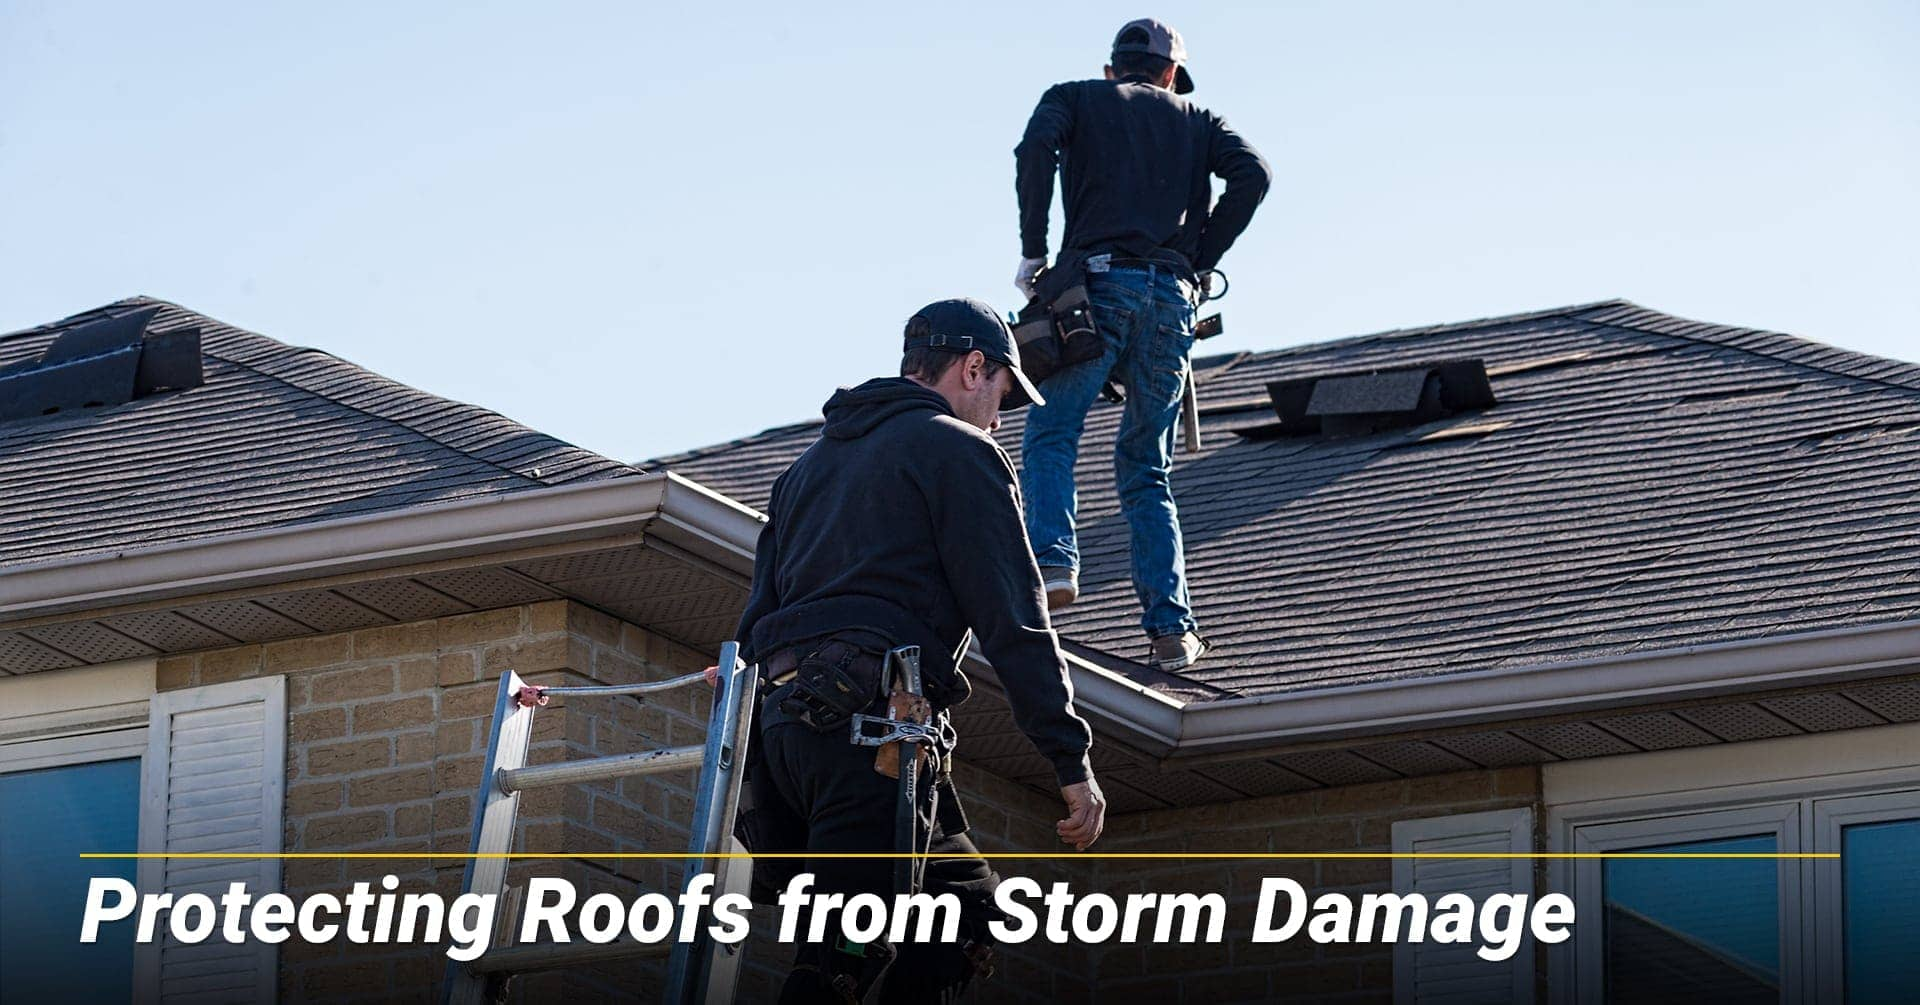 Protecting Roofs from Storm Damage, protect your roof